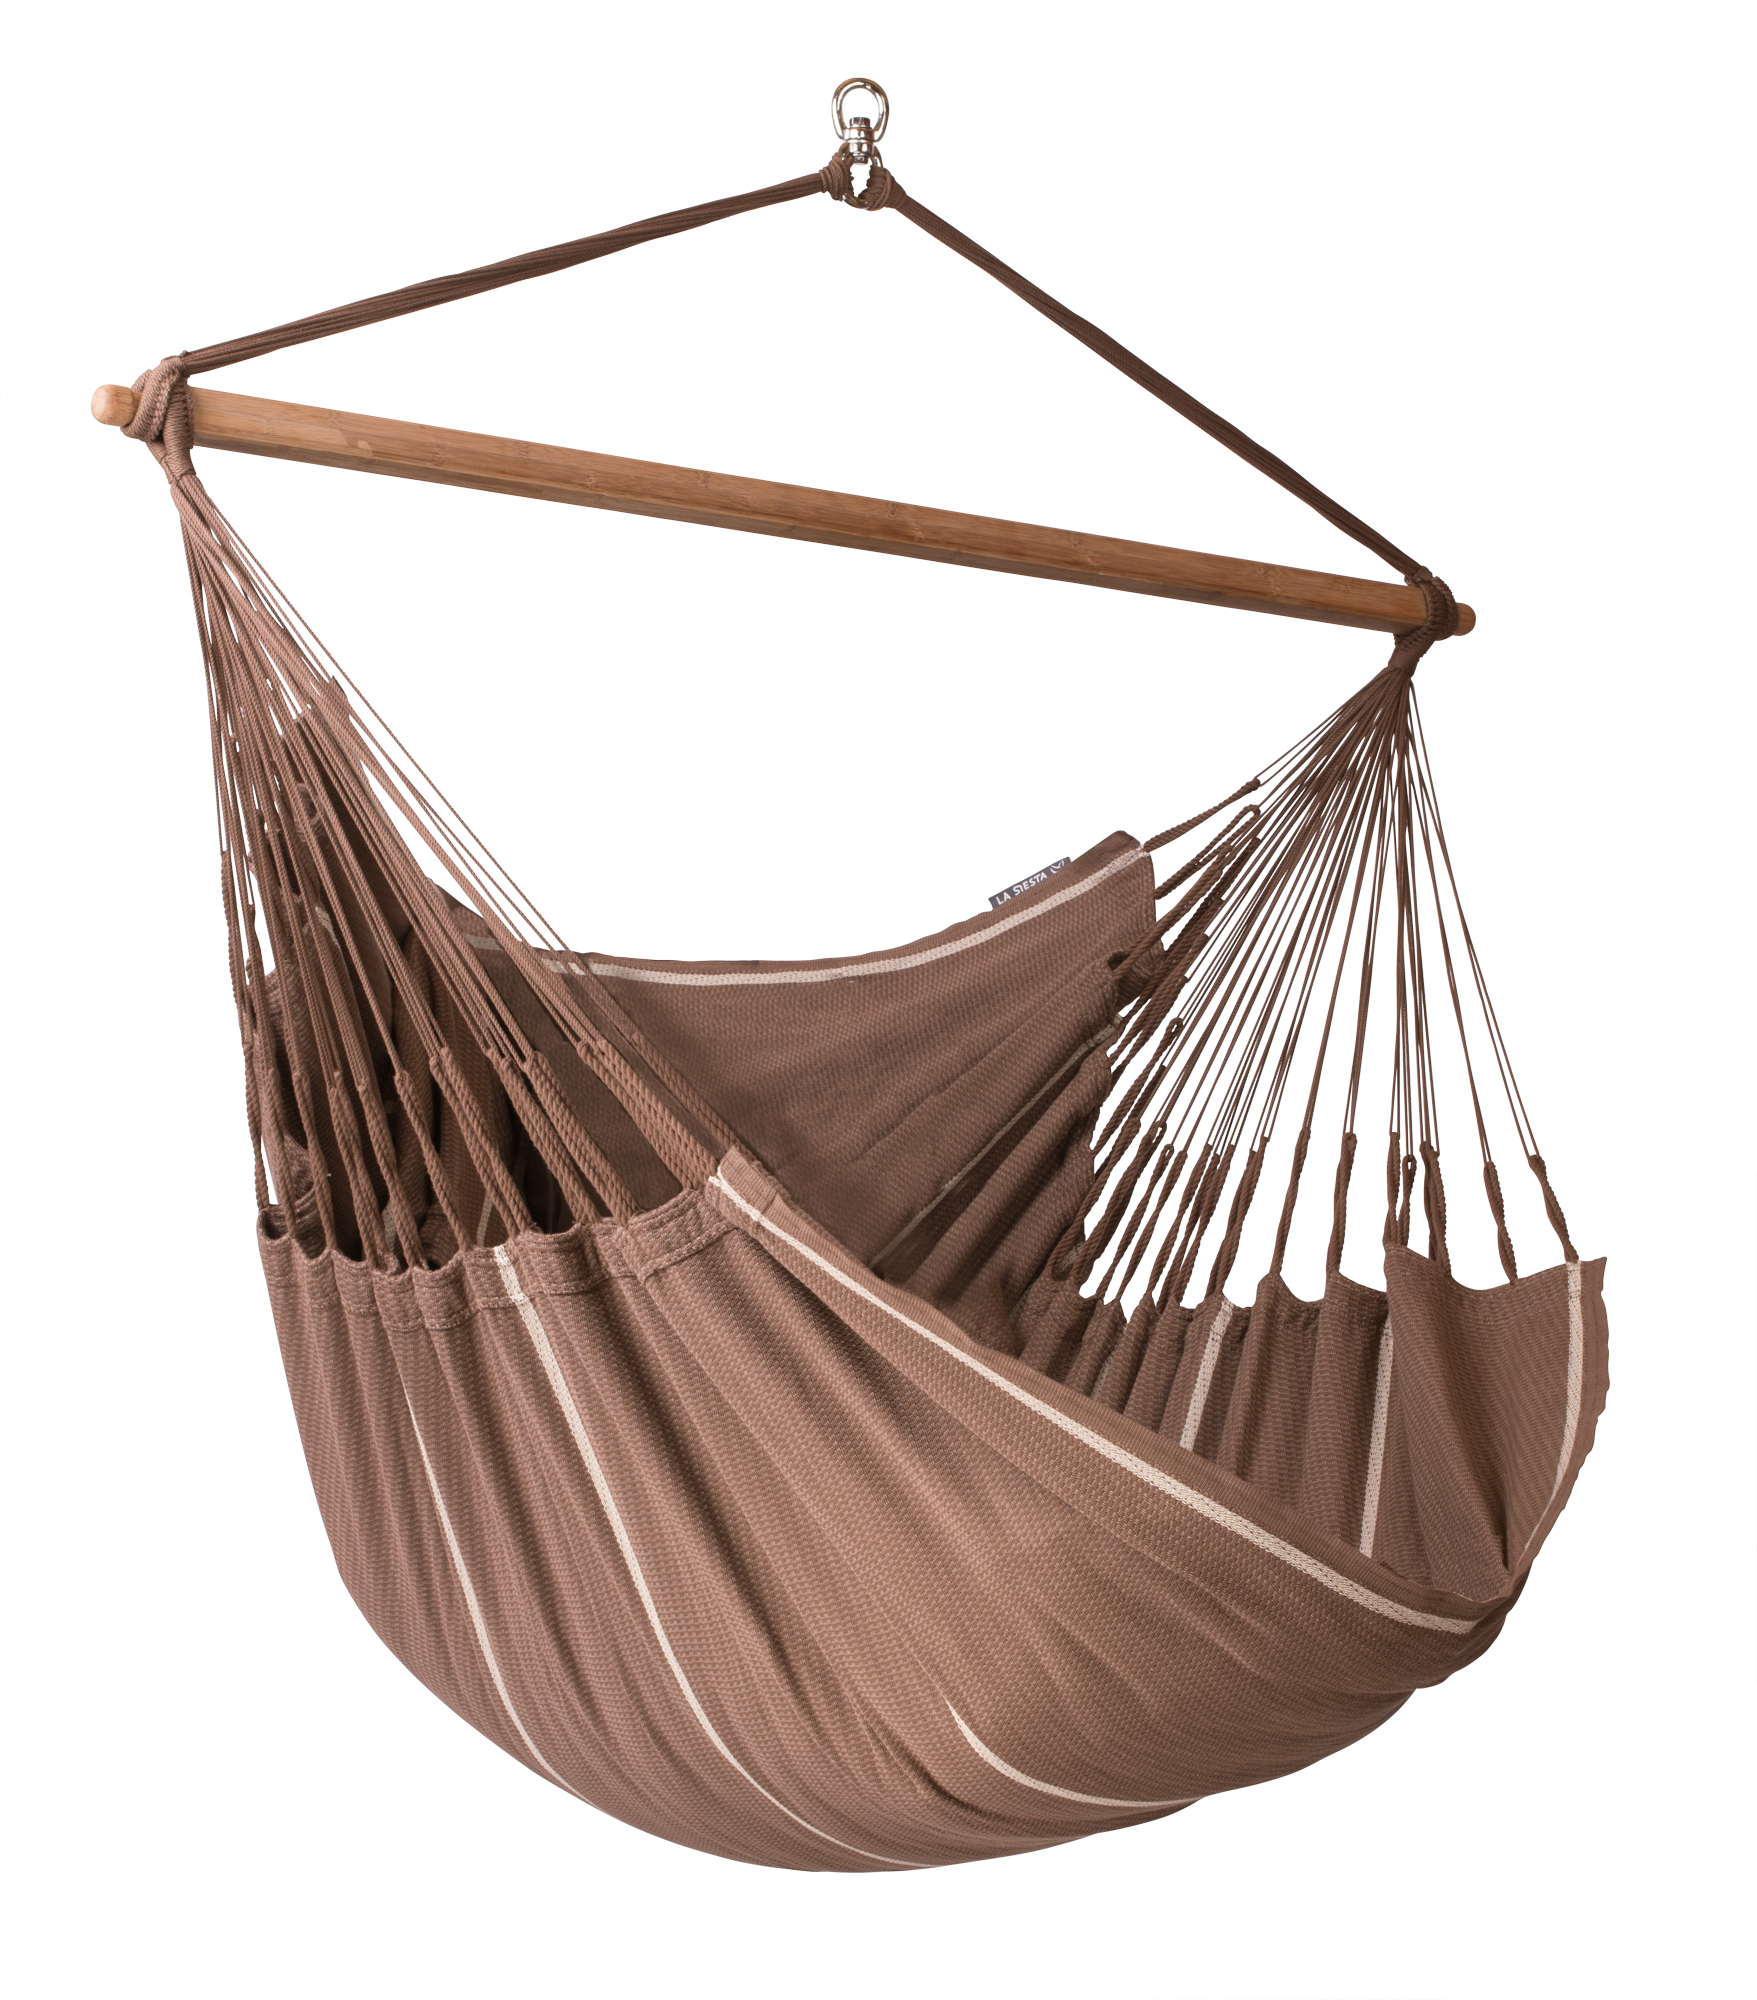 Hammock Chair Lounger HABANA by La Siesta -Product review